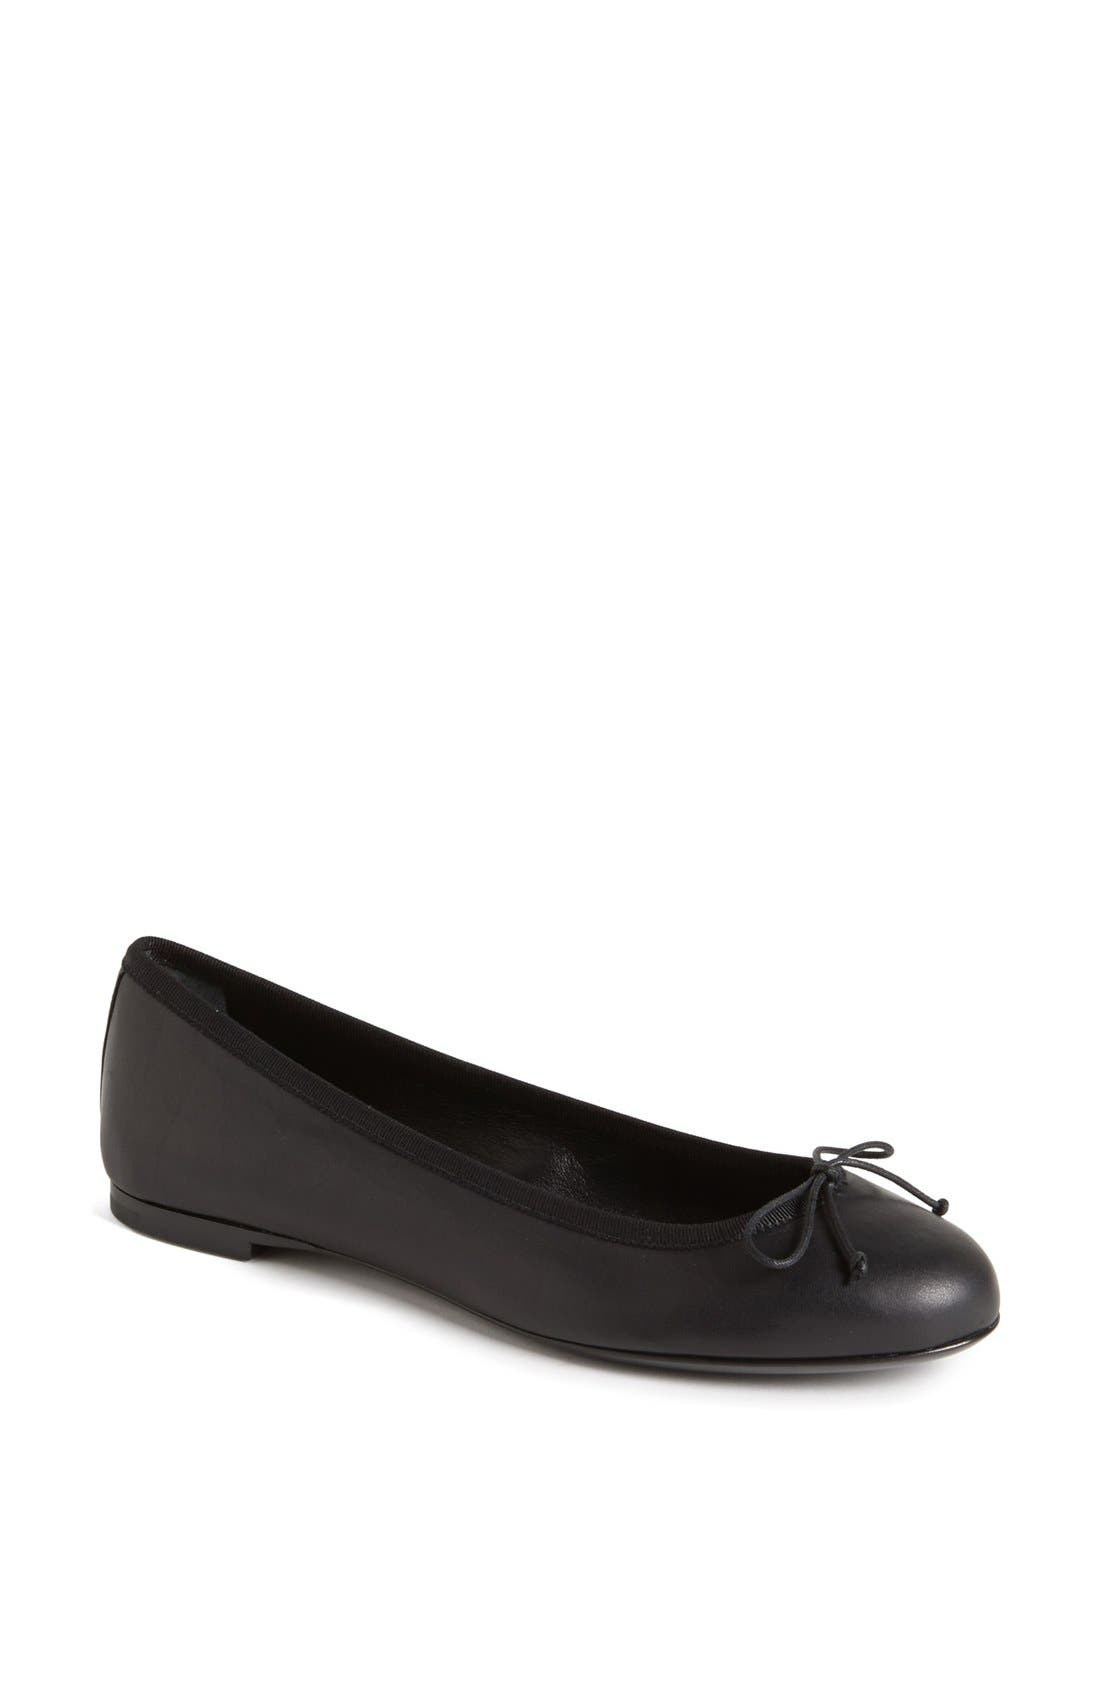 Main Image - Saint Laurent 'Dance' Leather Ballet Flat